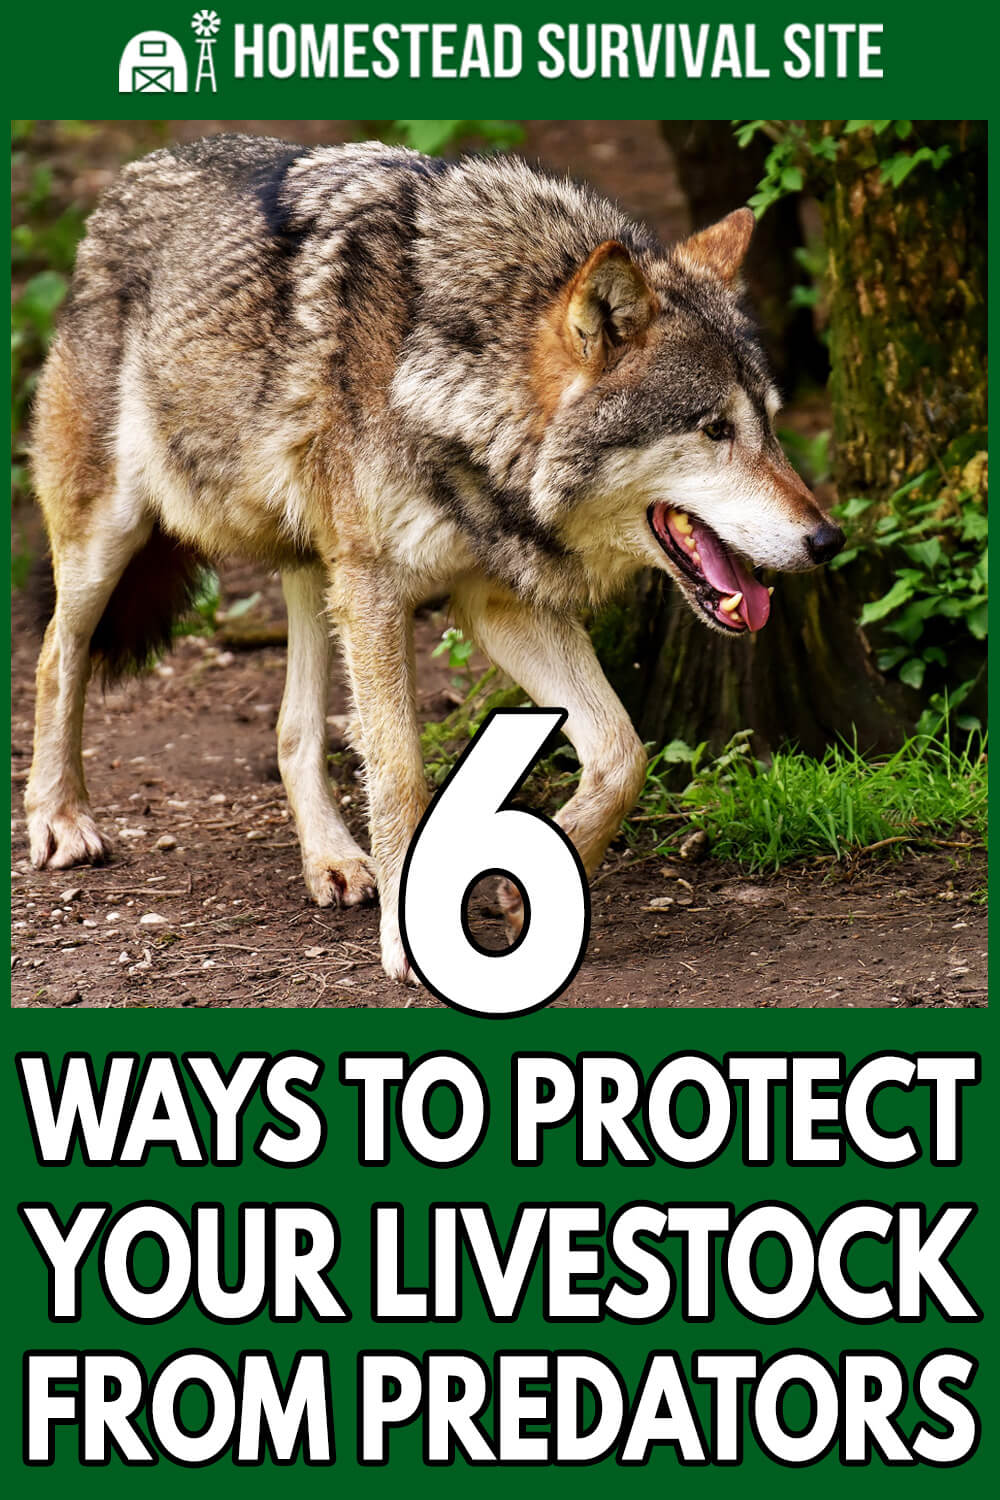 6 Ways to Protect Your Livestock from Predators